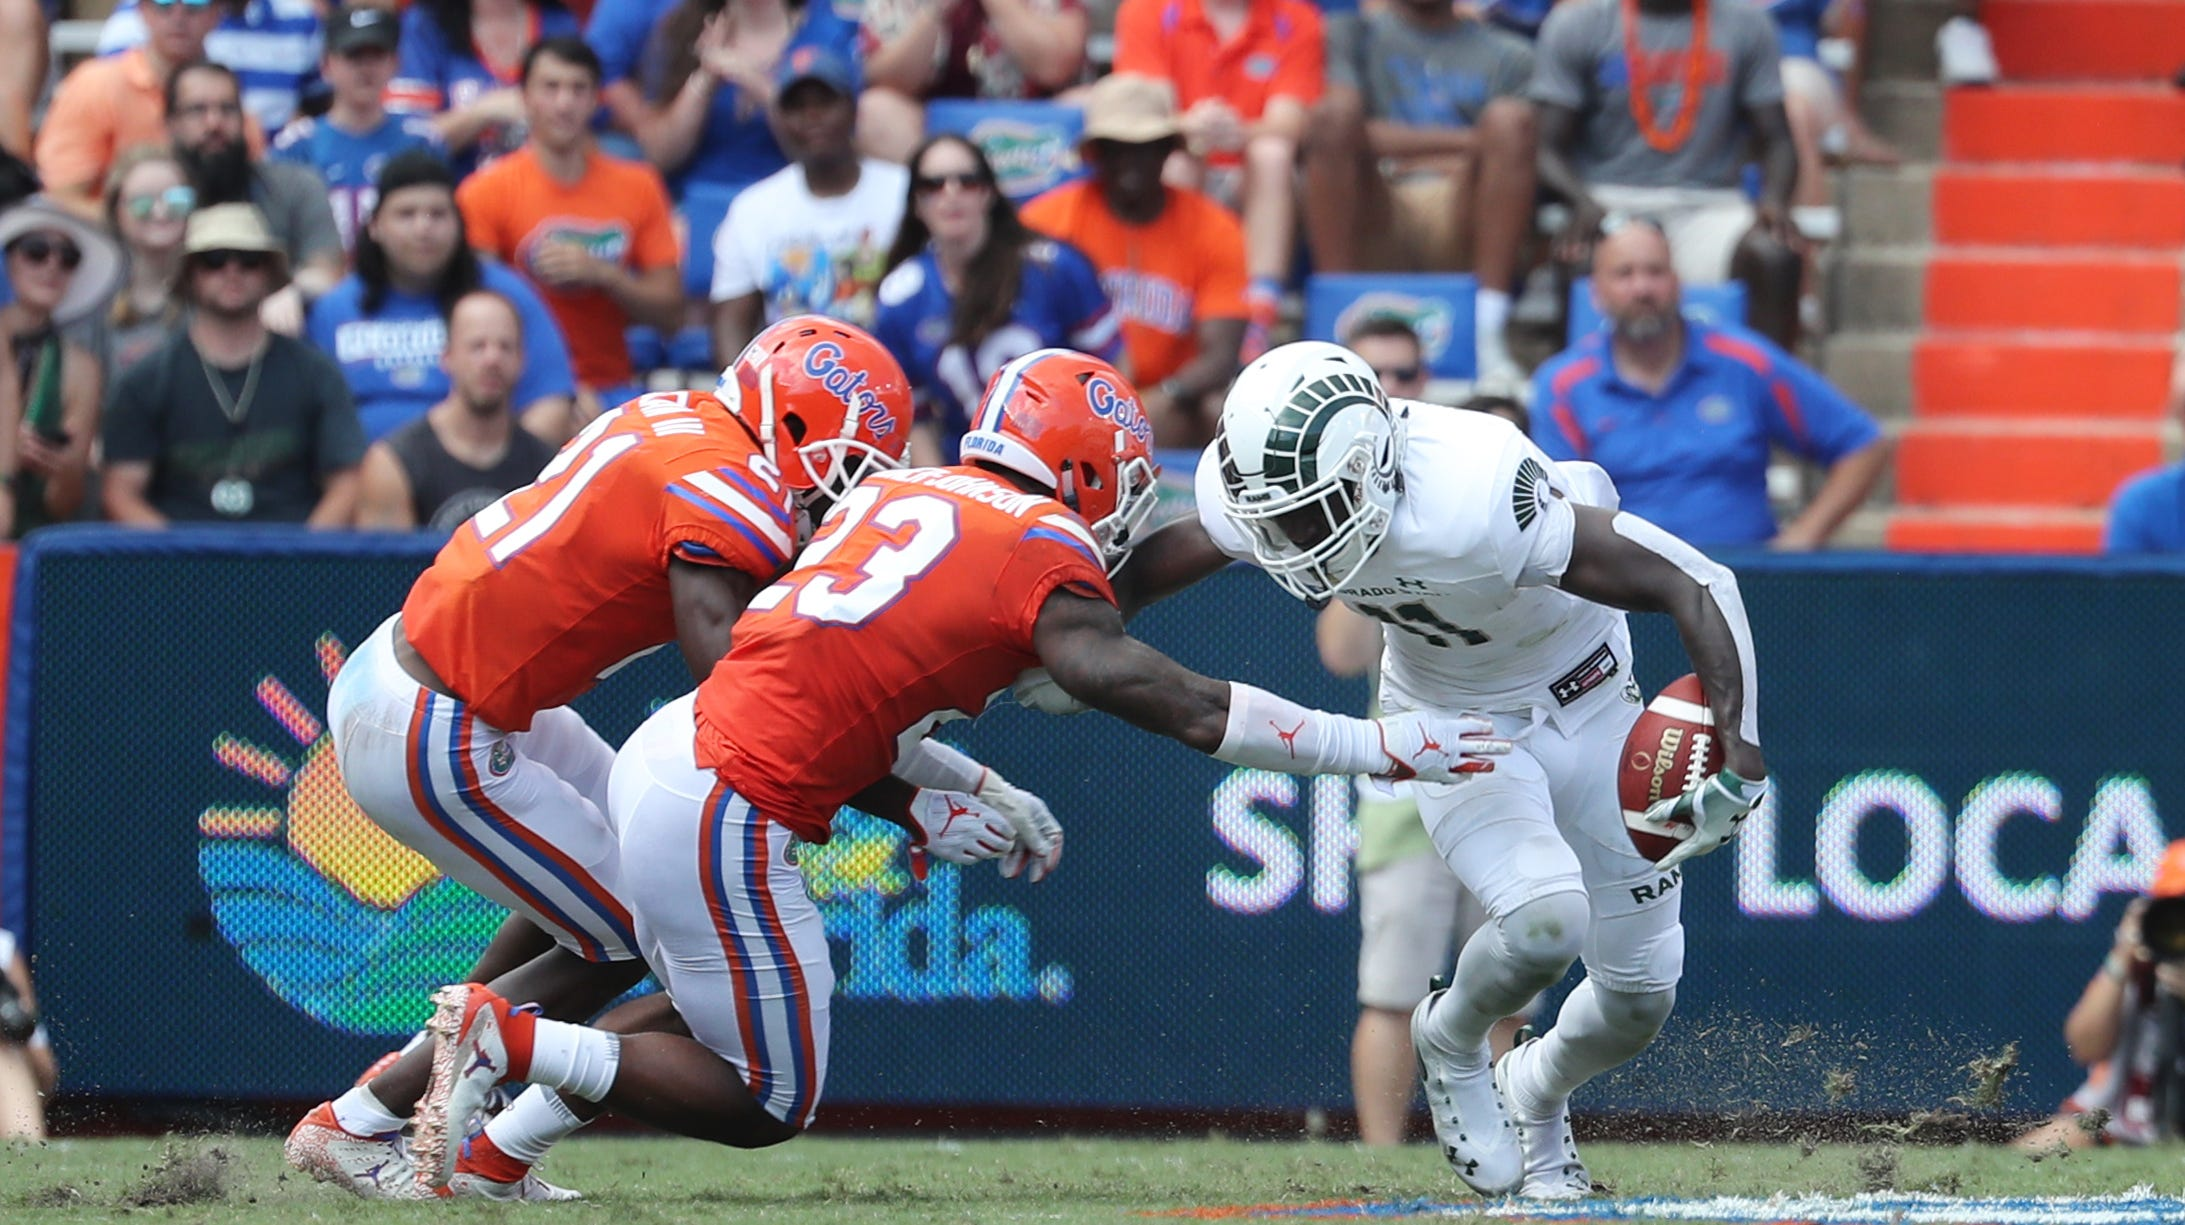 Opinion: Games in SEC territory a family reunion for CSU football program